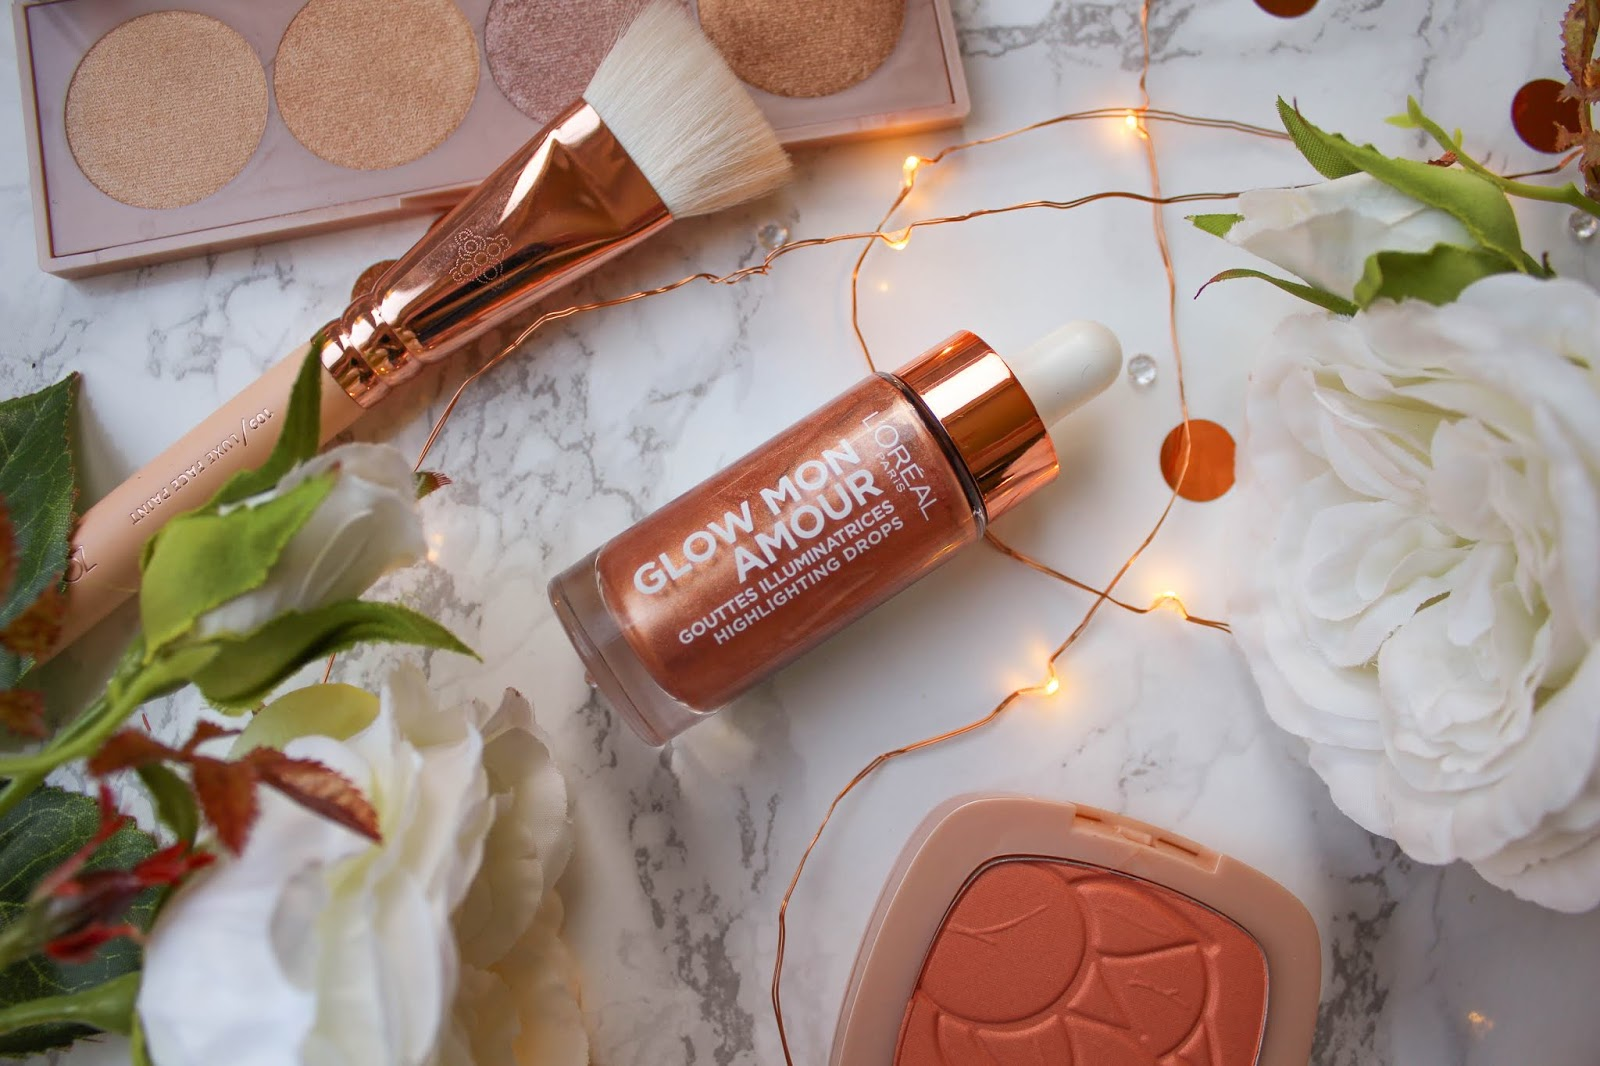 Glow Mon Amour Highlighting Drops in Bellini